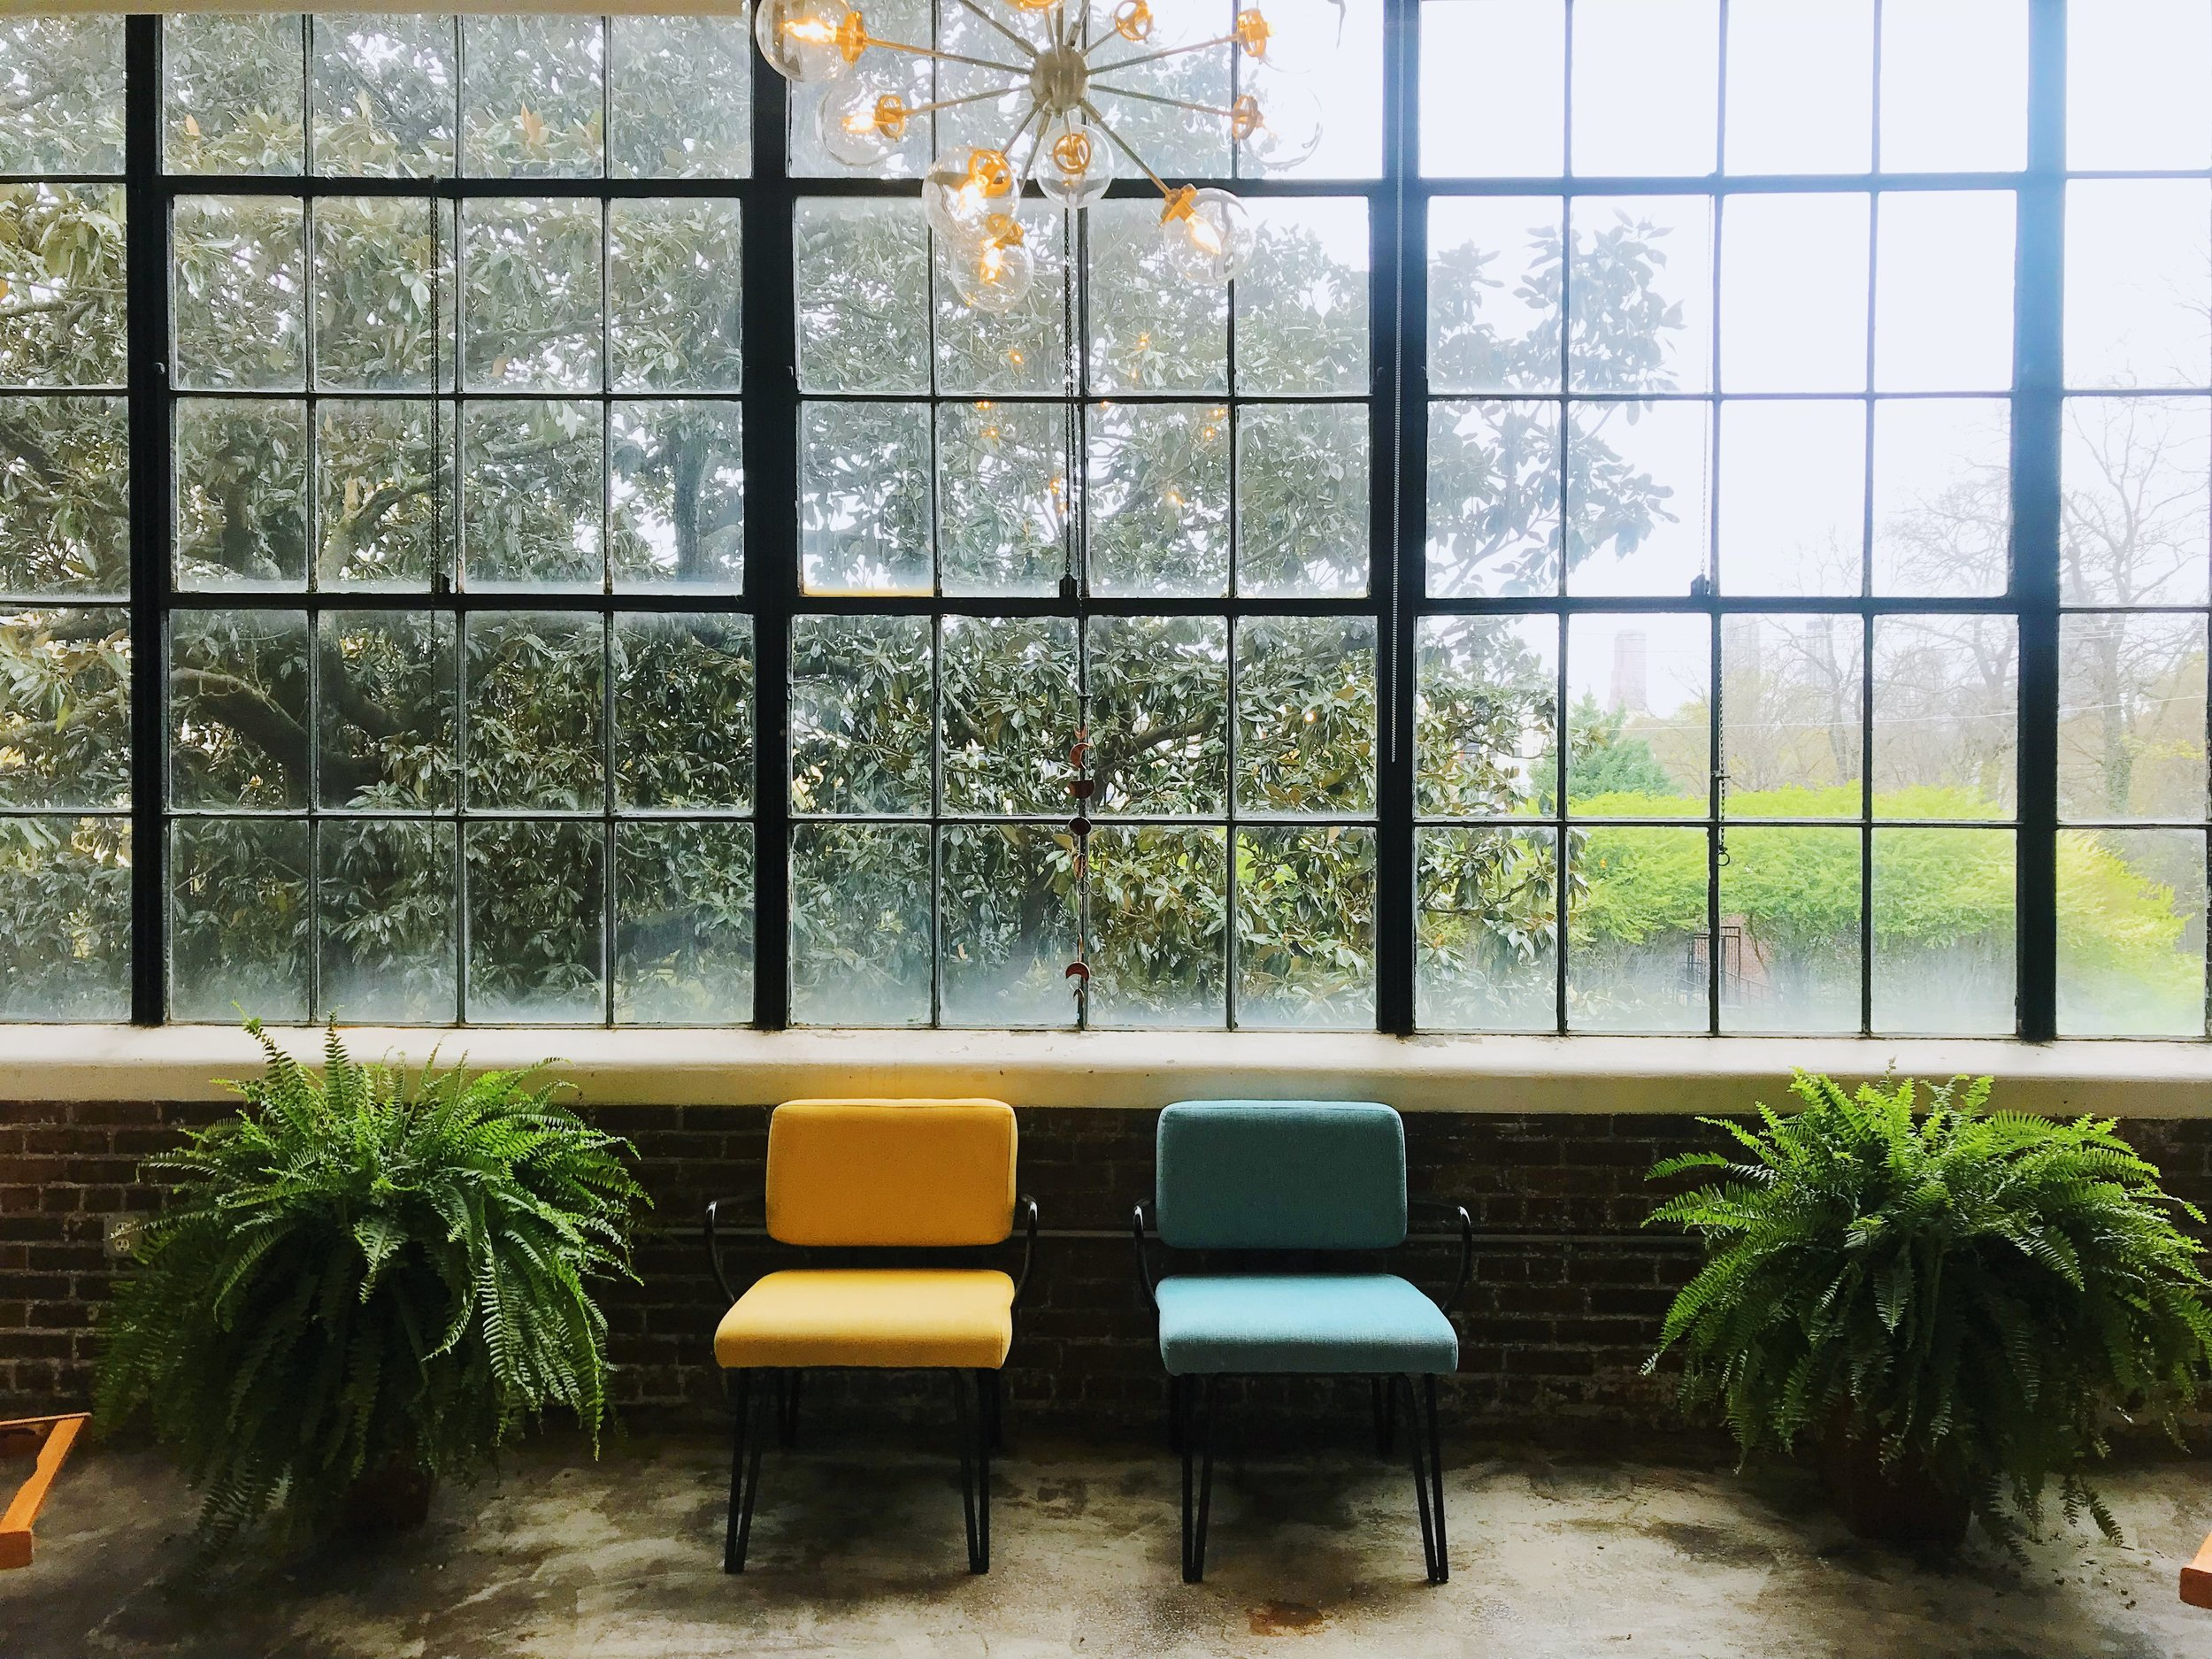 Calm, Relaxed Space - The scenic view through the wall of windows is one with majestic Southern Magnolias overlooking the Beltline, that creates a relaxing atmosphere, in which one can just breathe and let go of the stresses of the day. There will be individuals treated alongside of you in a quiet, respectful spa-like environment.